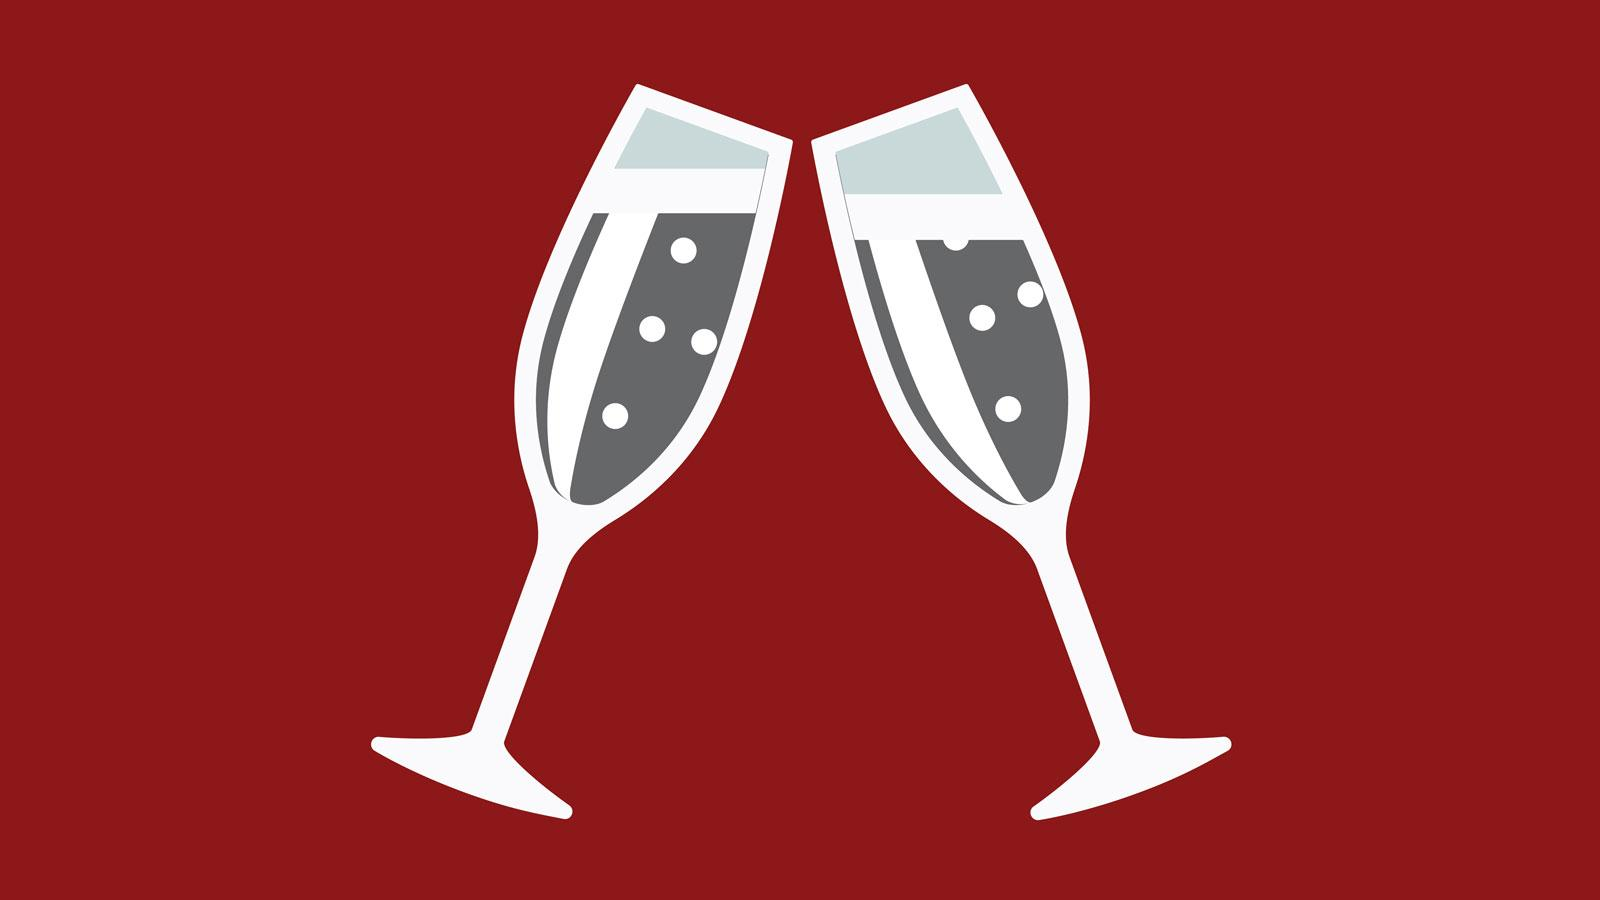 What type of sparkling wine can I drink if I have diabetes?